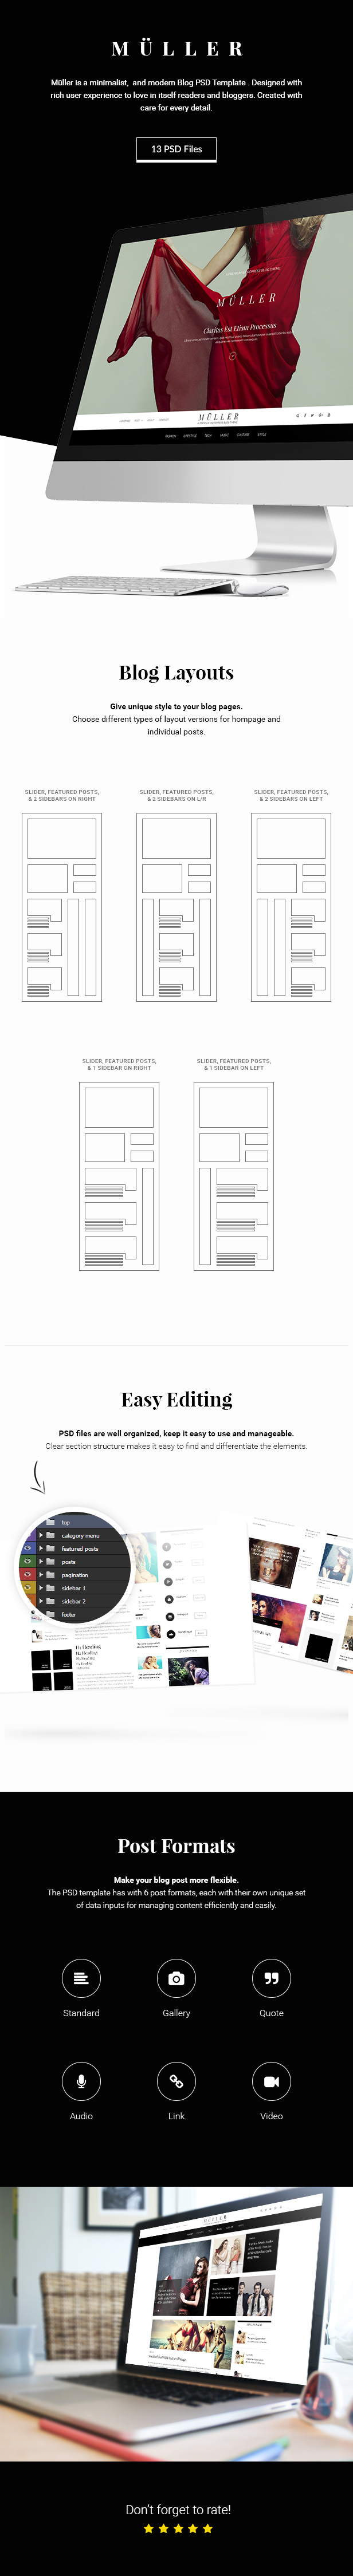 Muller - Blog, Magazine and News PSD Template - 1